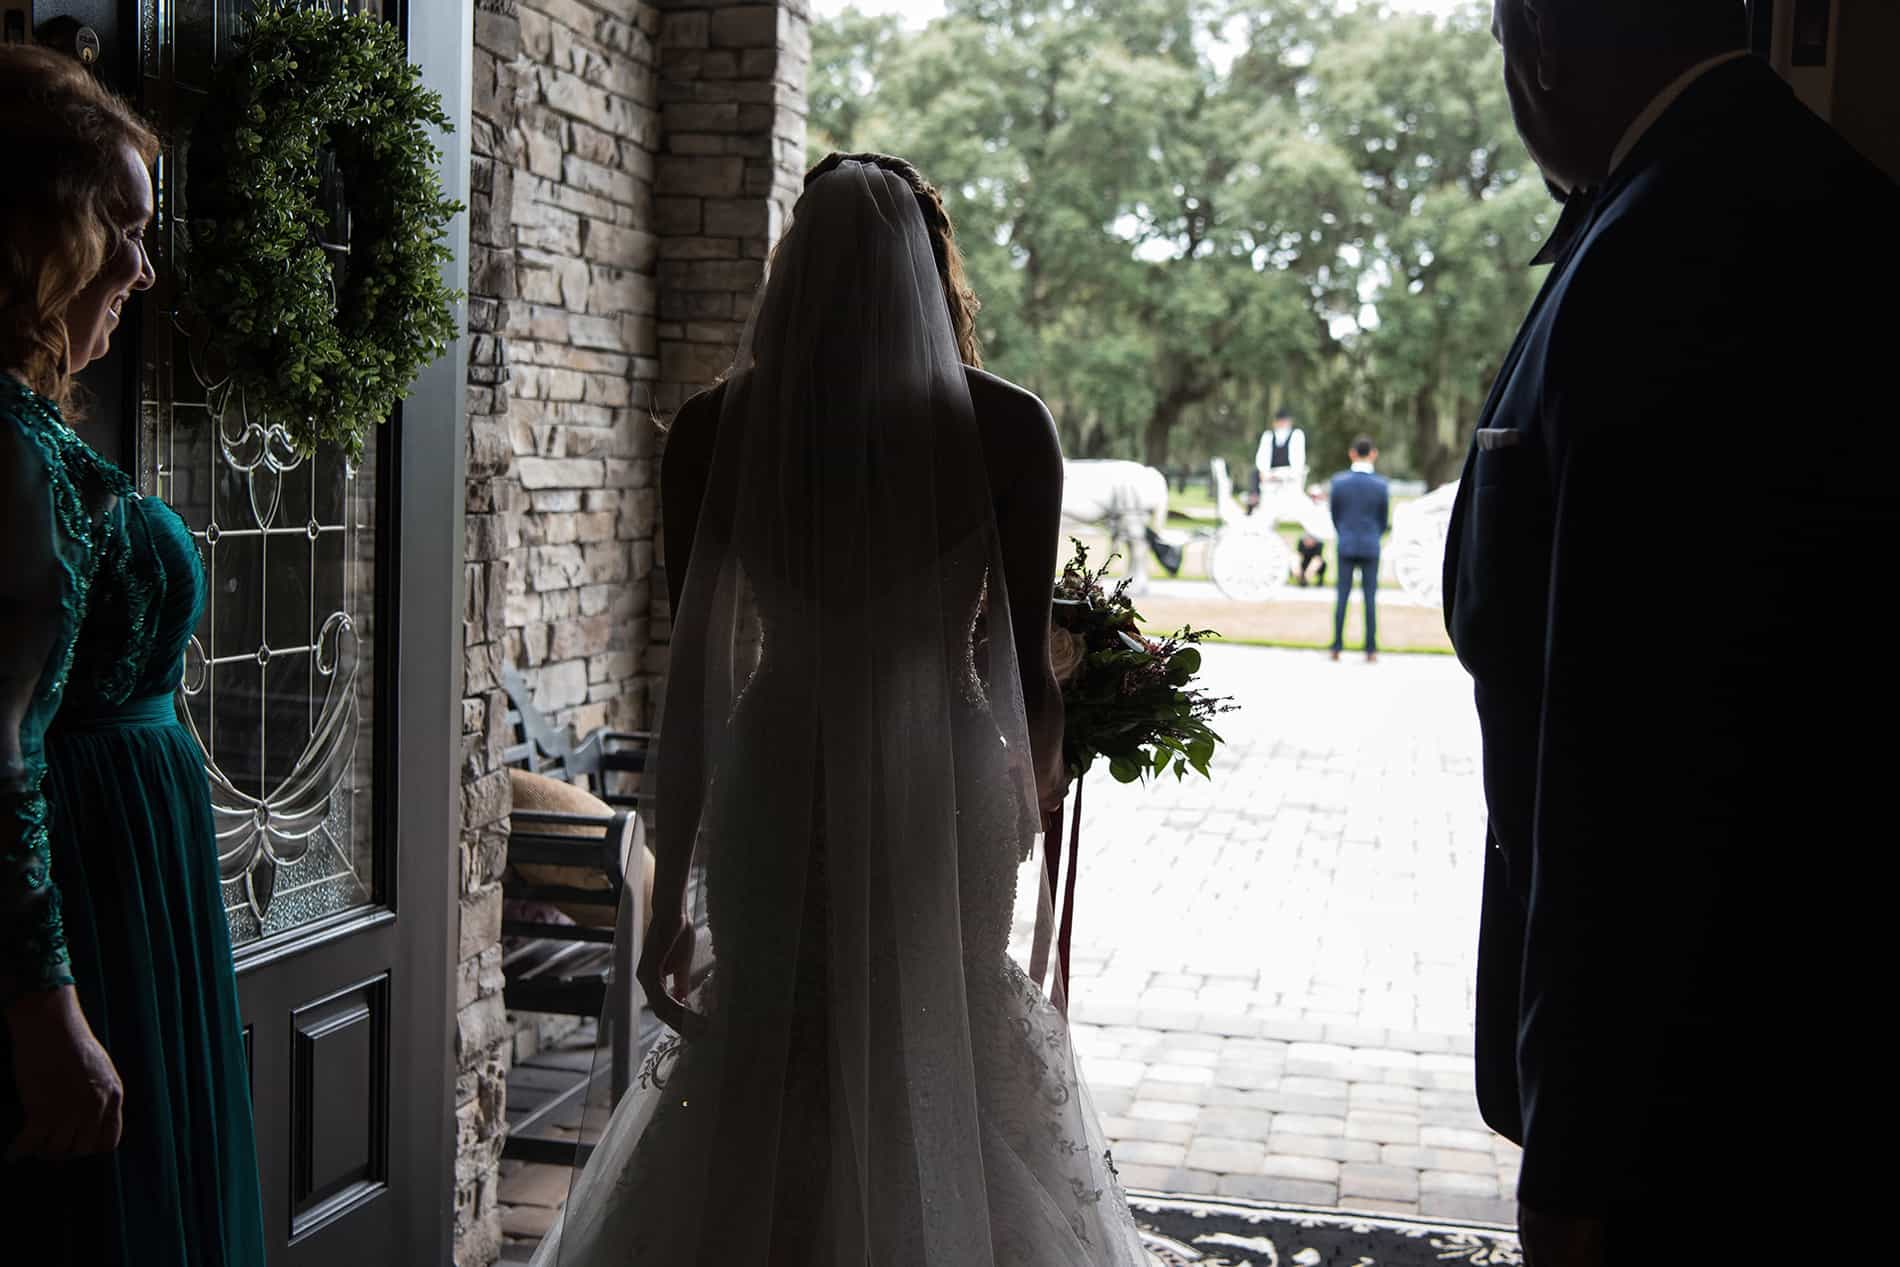 Bride and Groom getting ready for their wedding at a private residence